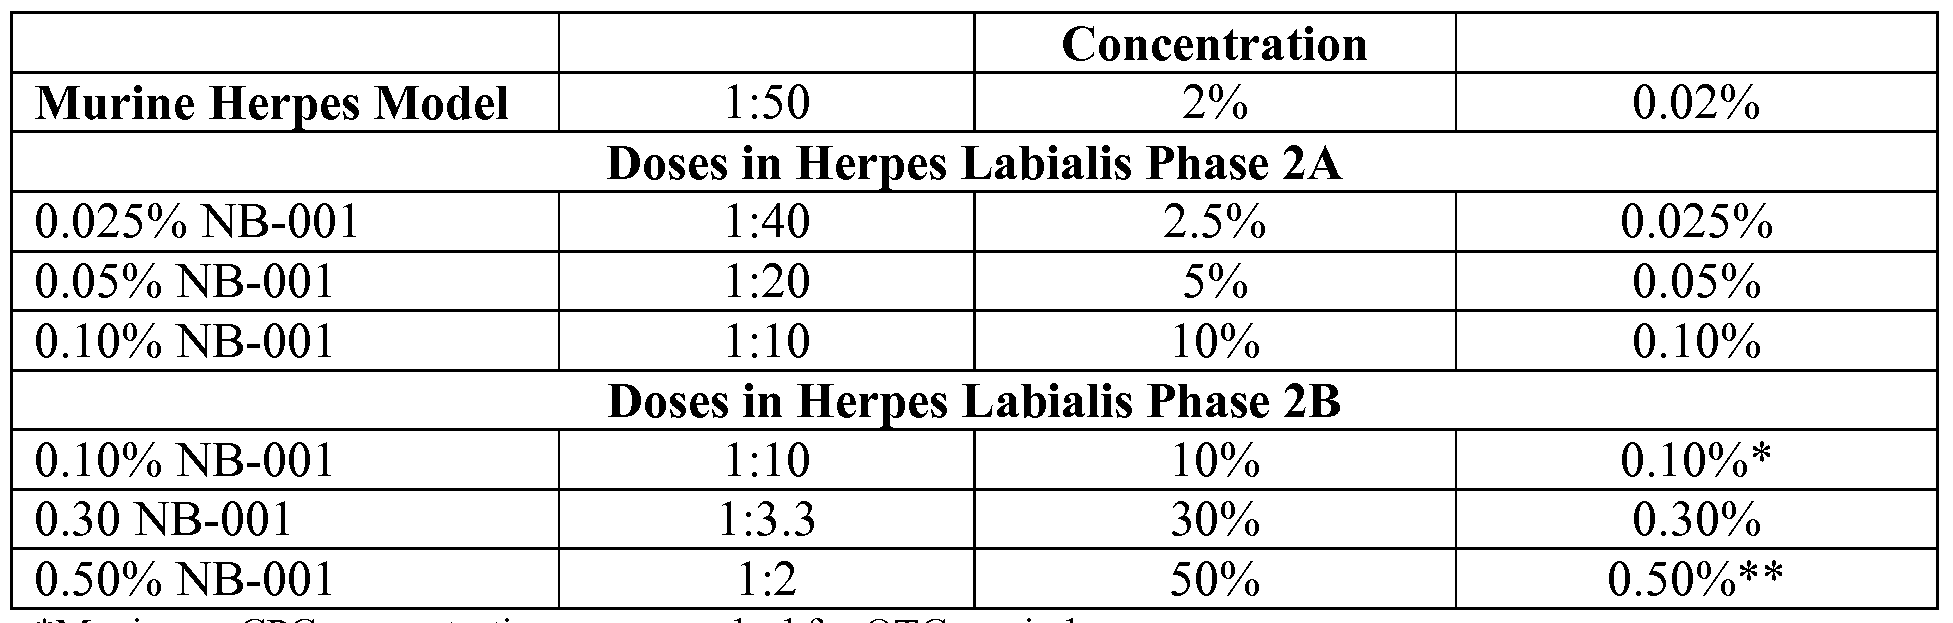 WO2009129470A2 - Methods for treating herpes virus infections